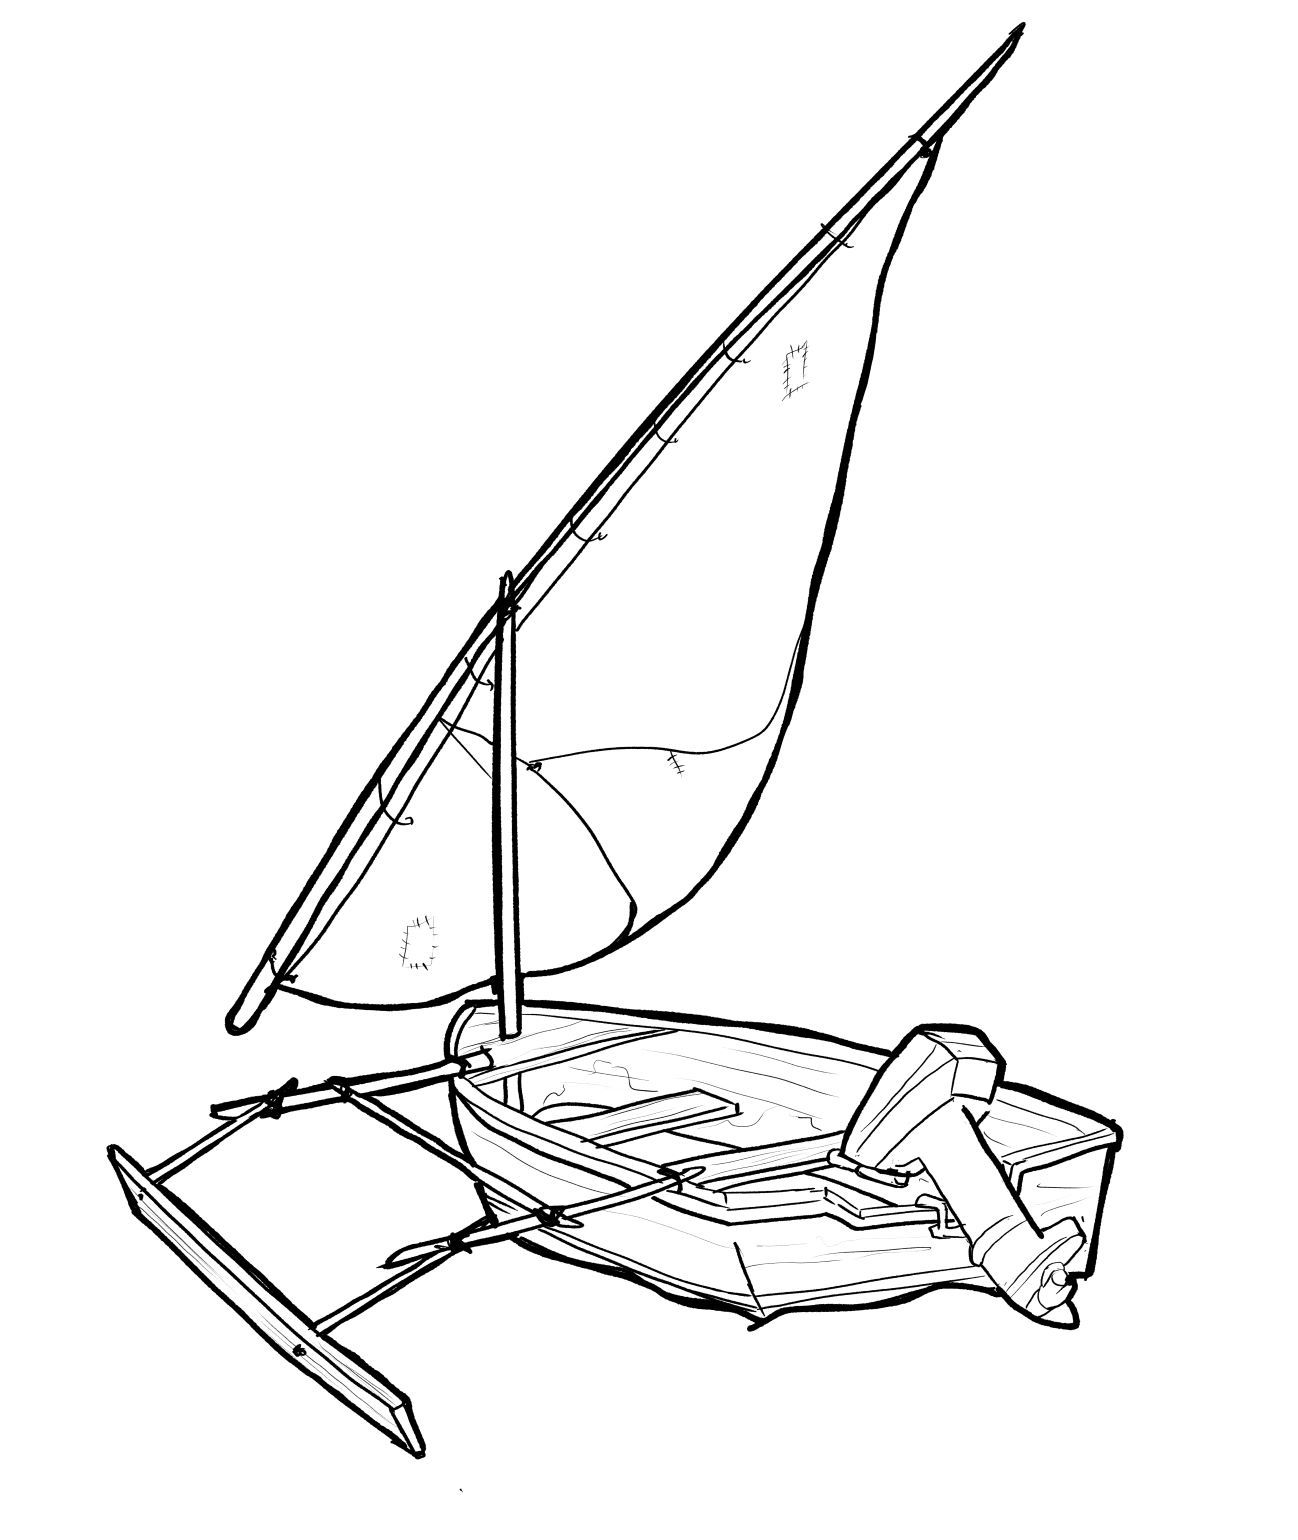 vehicle design boat sm.jpg